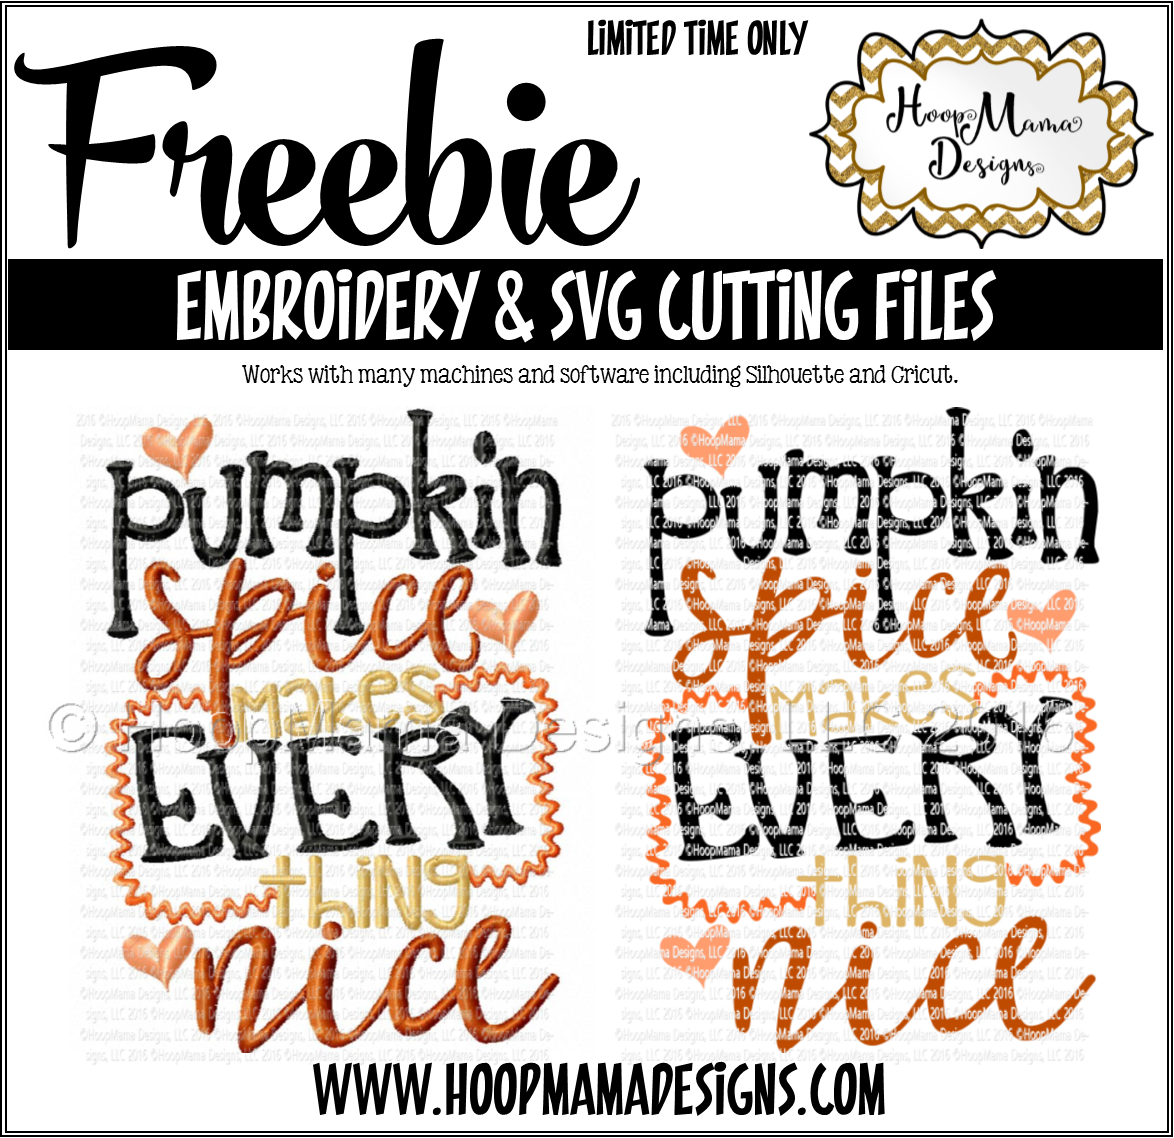 Svg design embroidery. Limited time freebie from